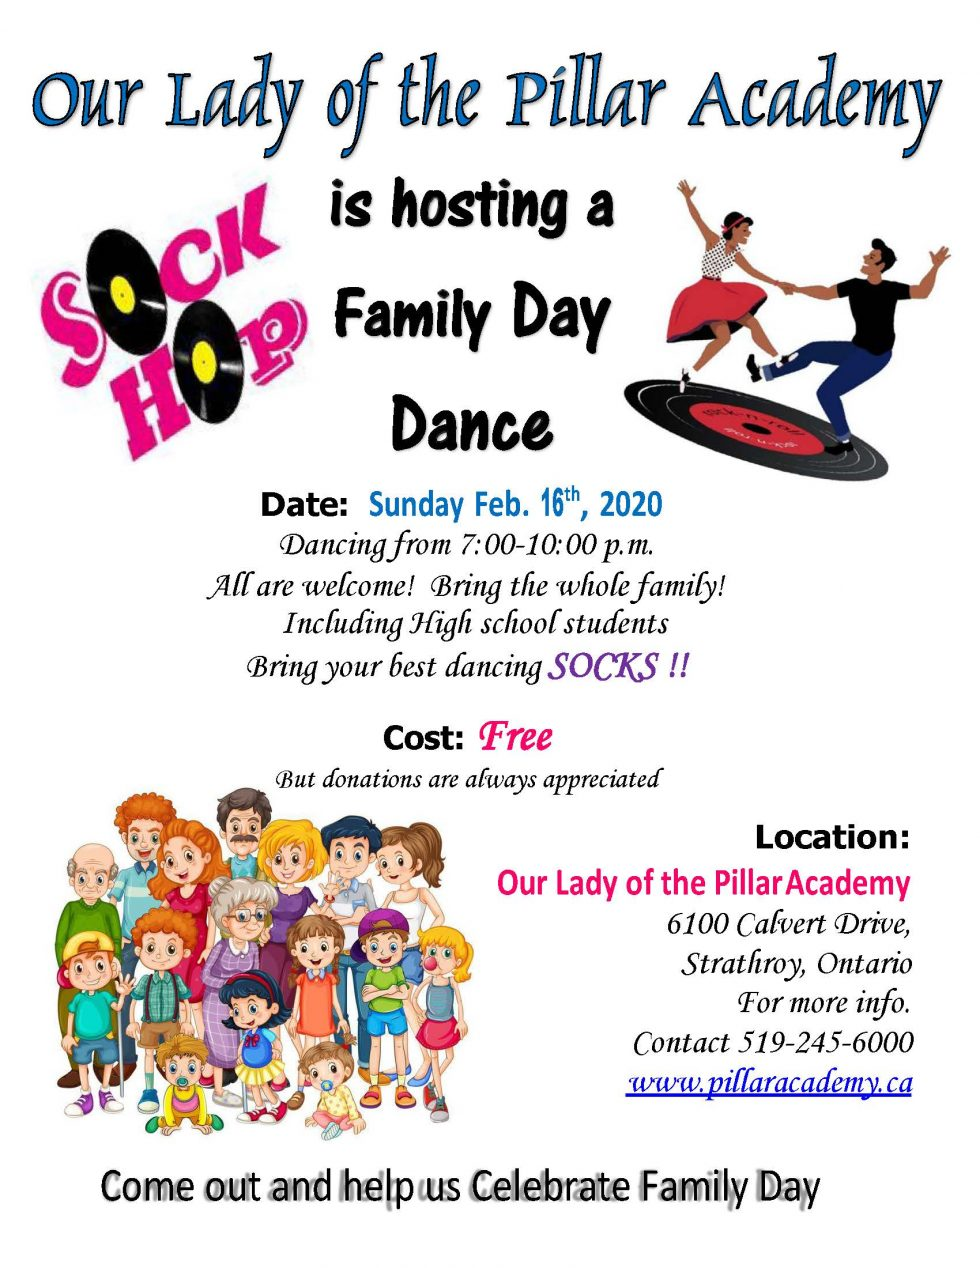 Family Day Dance on Sunday, February 16, 2020